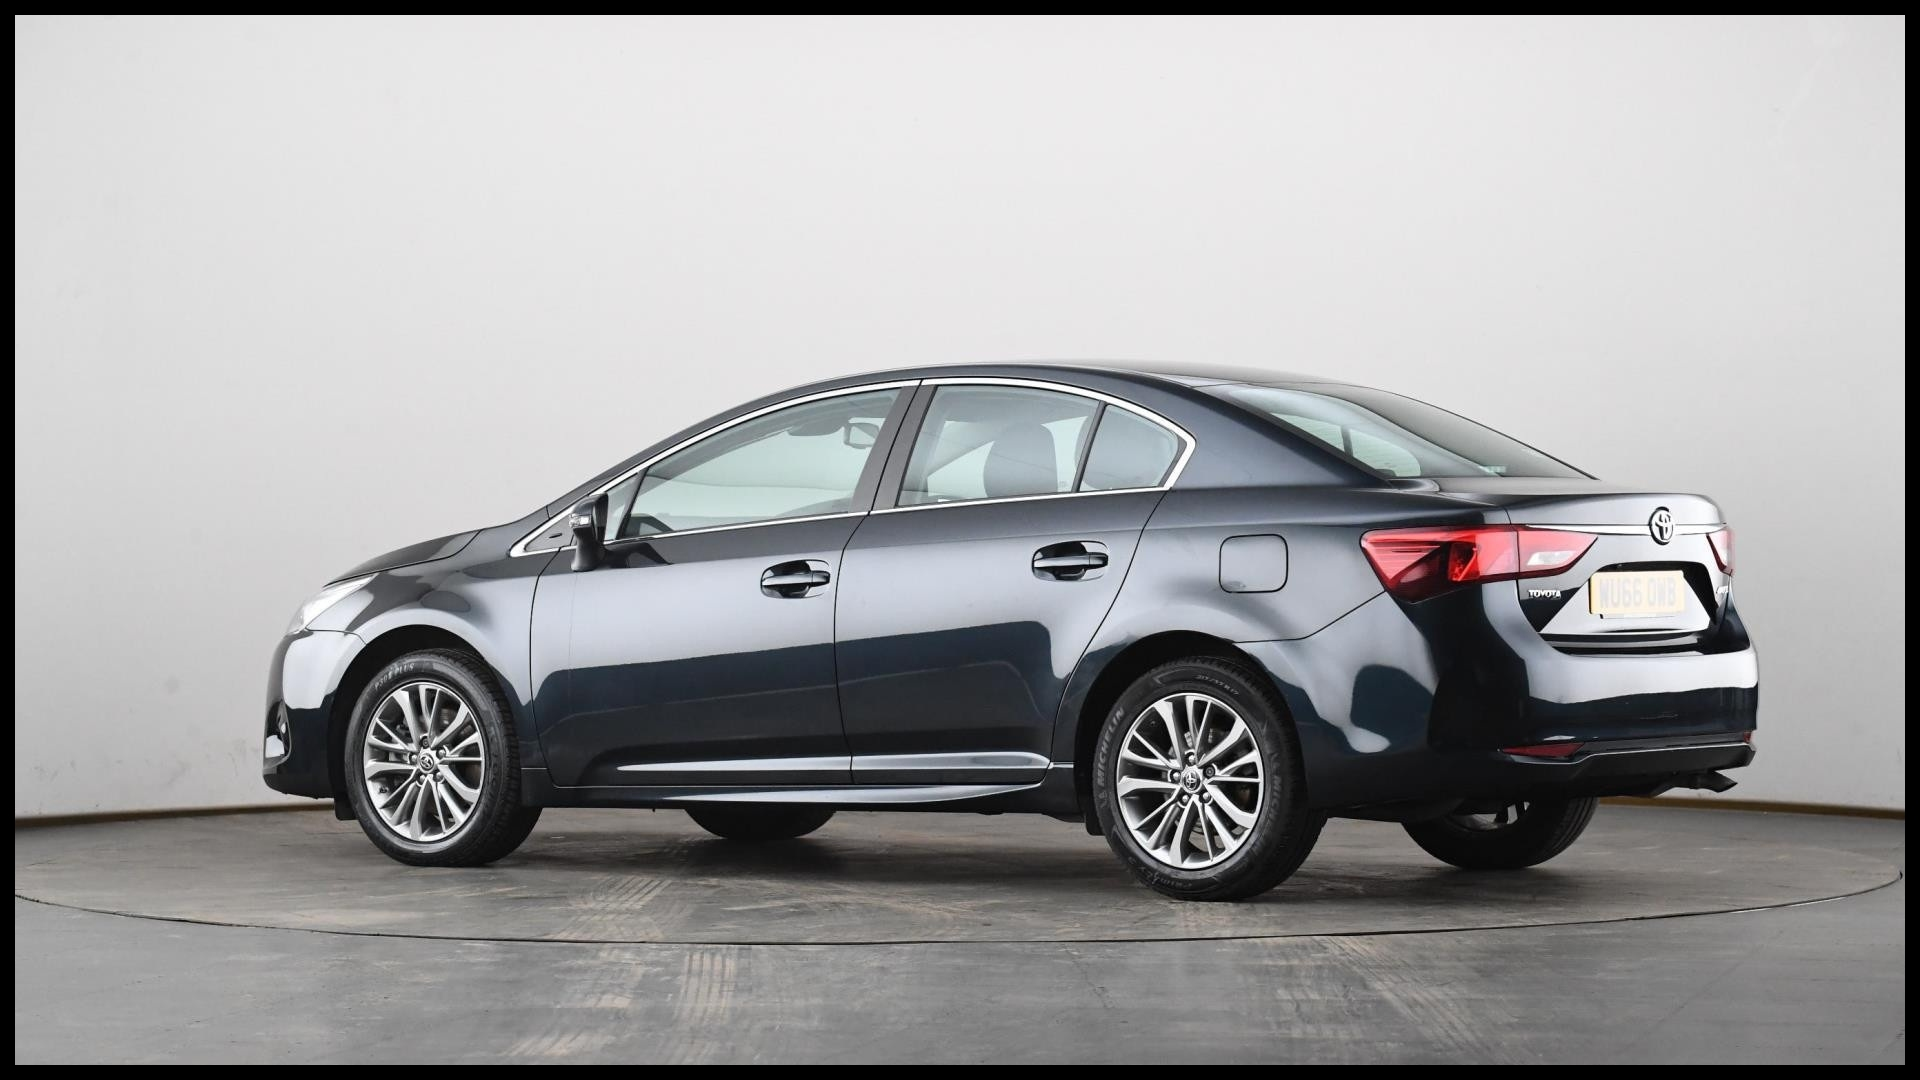 2018 toyota Camry Trd Specs Lovely Hot Special Trd Camry 2018 toyota Grey Best Used toyota